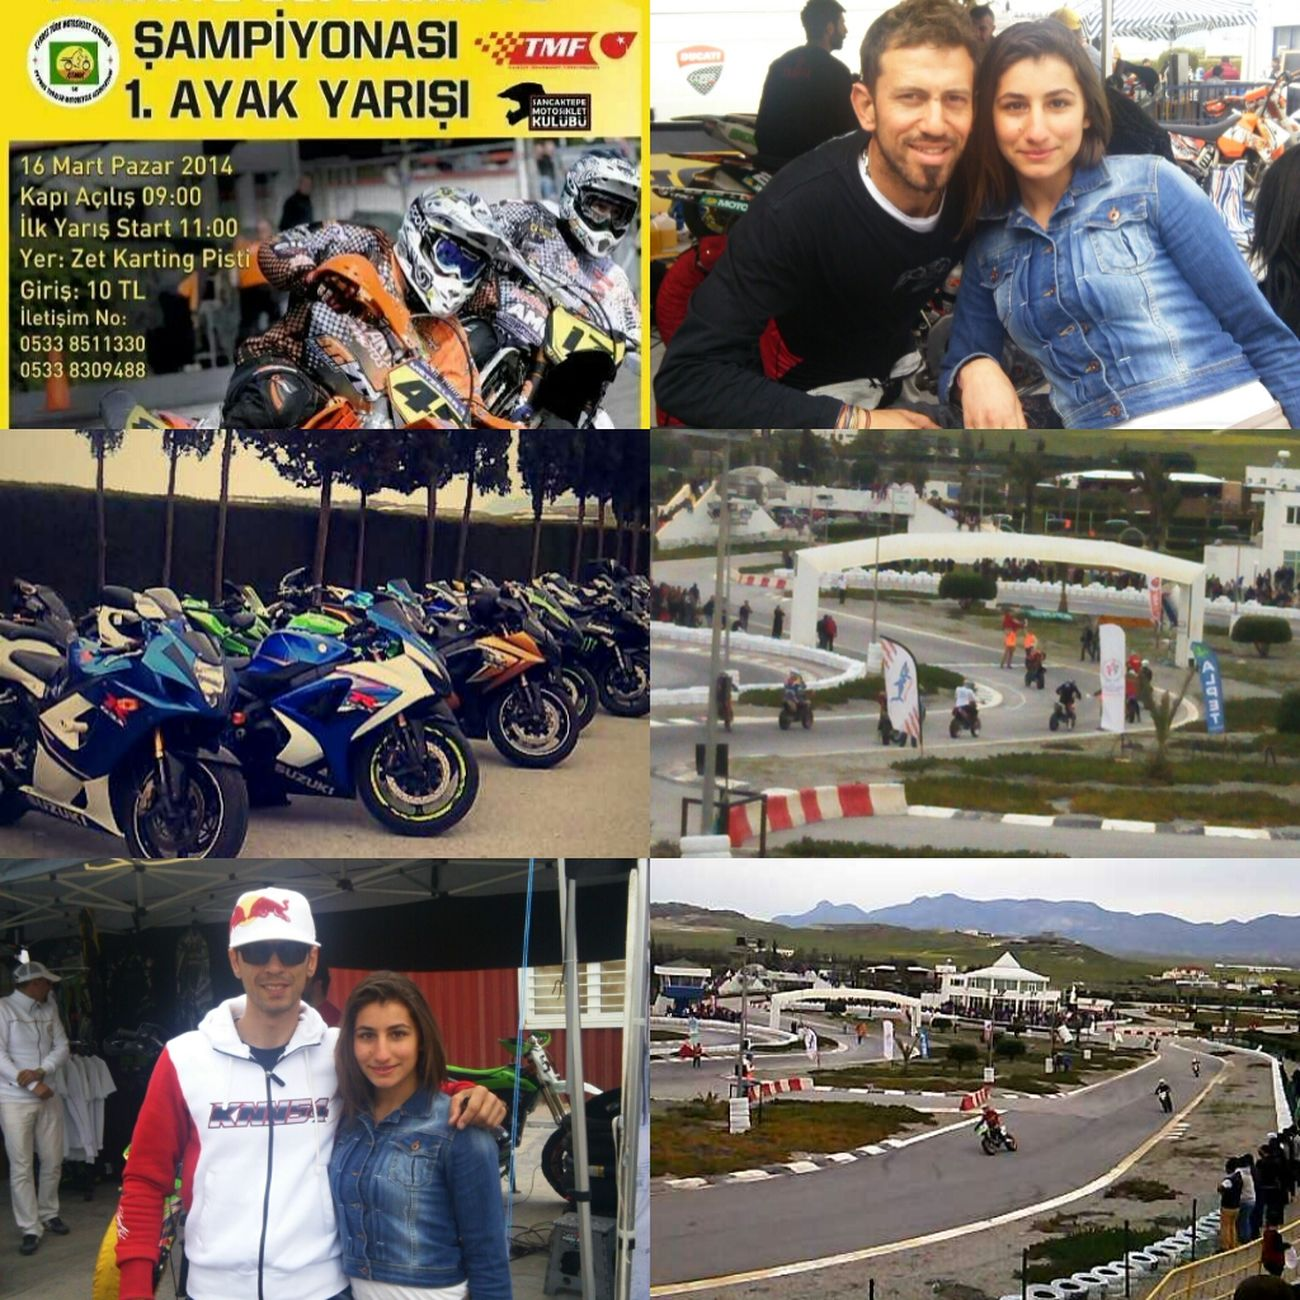 Hi! Motocross Race Enjoying Life with kenan sofuoglu and mehmet silahşör xxxx love <3 funy time x